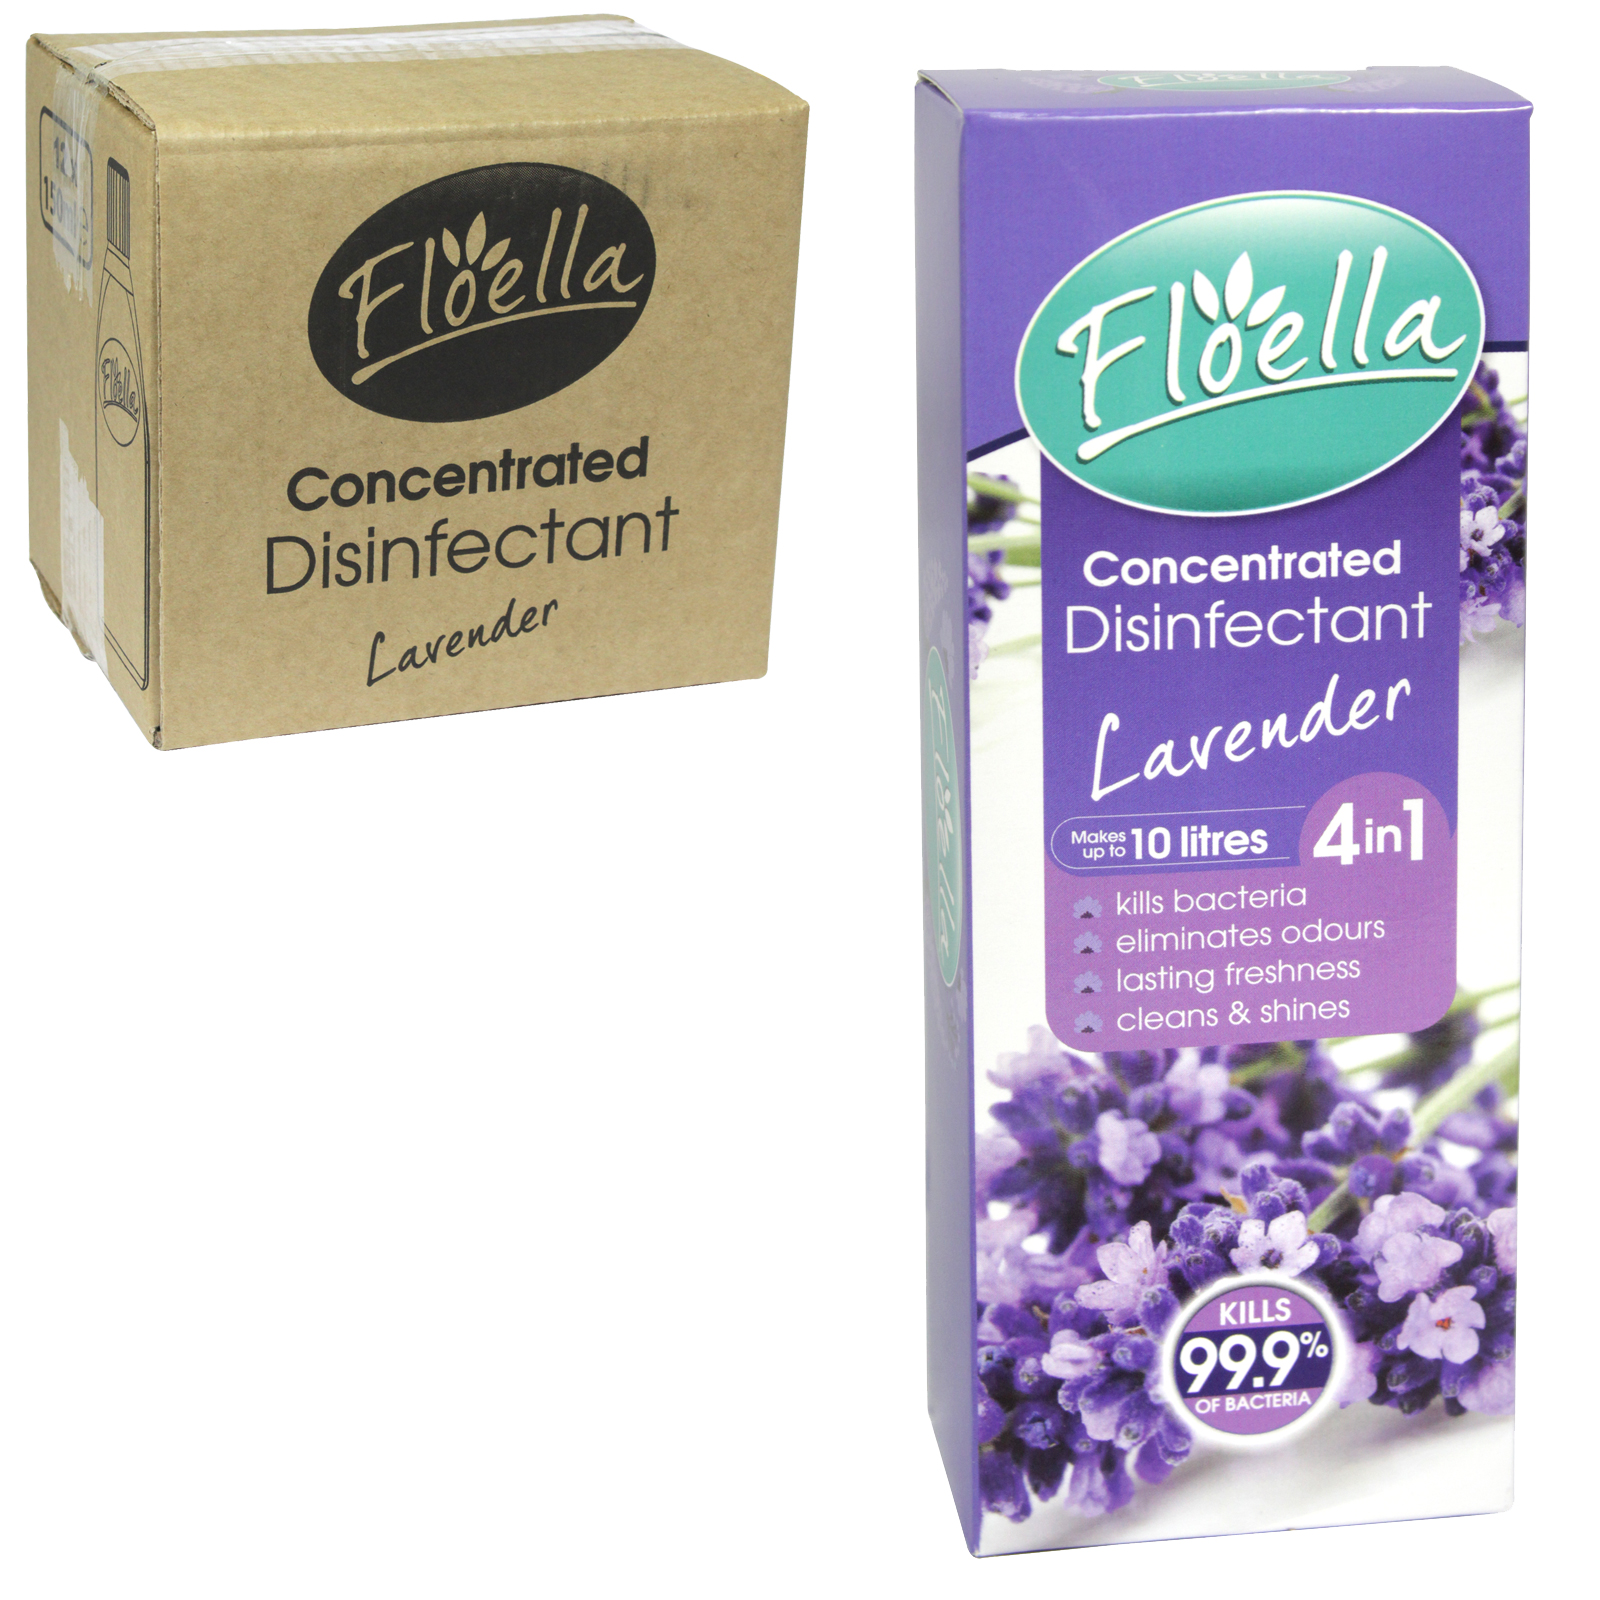 FLOELLA 4IN1 CONCENTRATE DISINFECTANT 150ML MAKES 10 LITRES LAVENDER X12